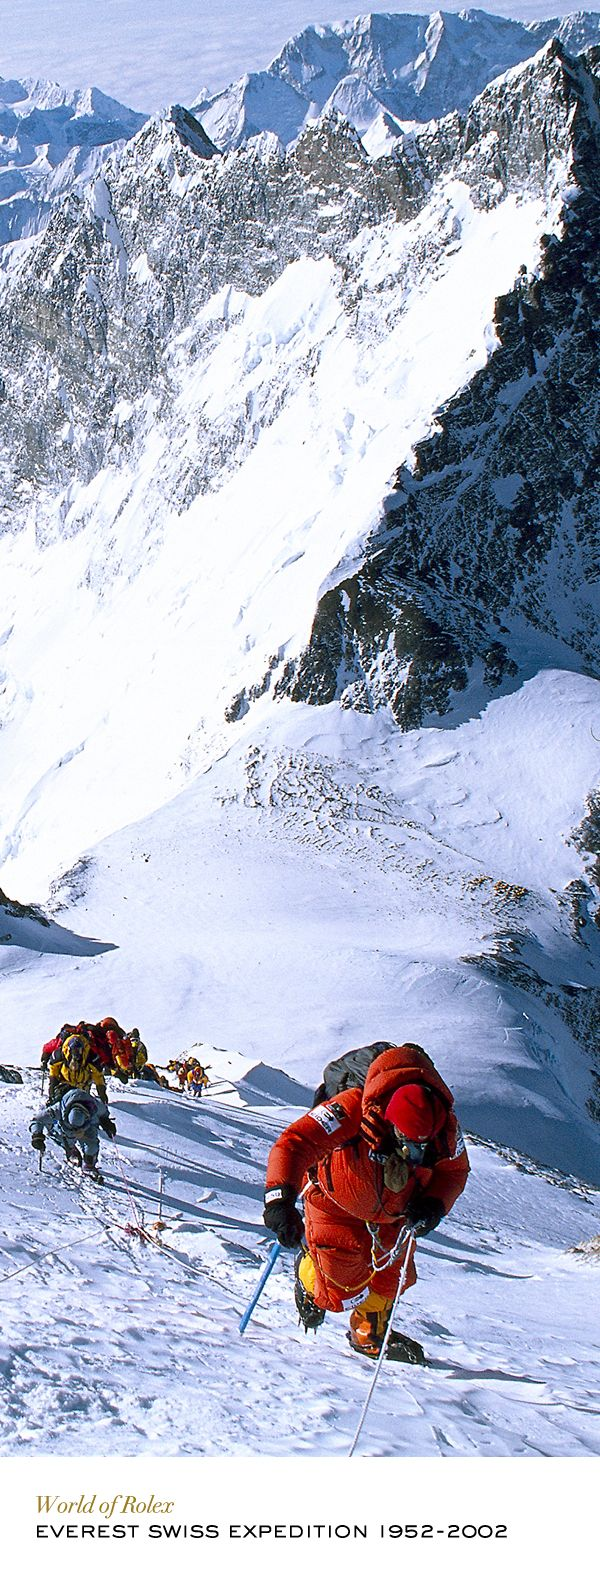 Rolex watches accompanied Swiss mountaineers to Mount Everest in 2002 to mark the 50th anniversary of their compatriots' expedition in 1952. #RolexOfficial